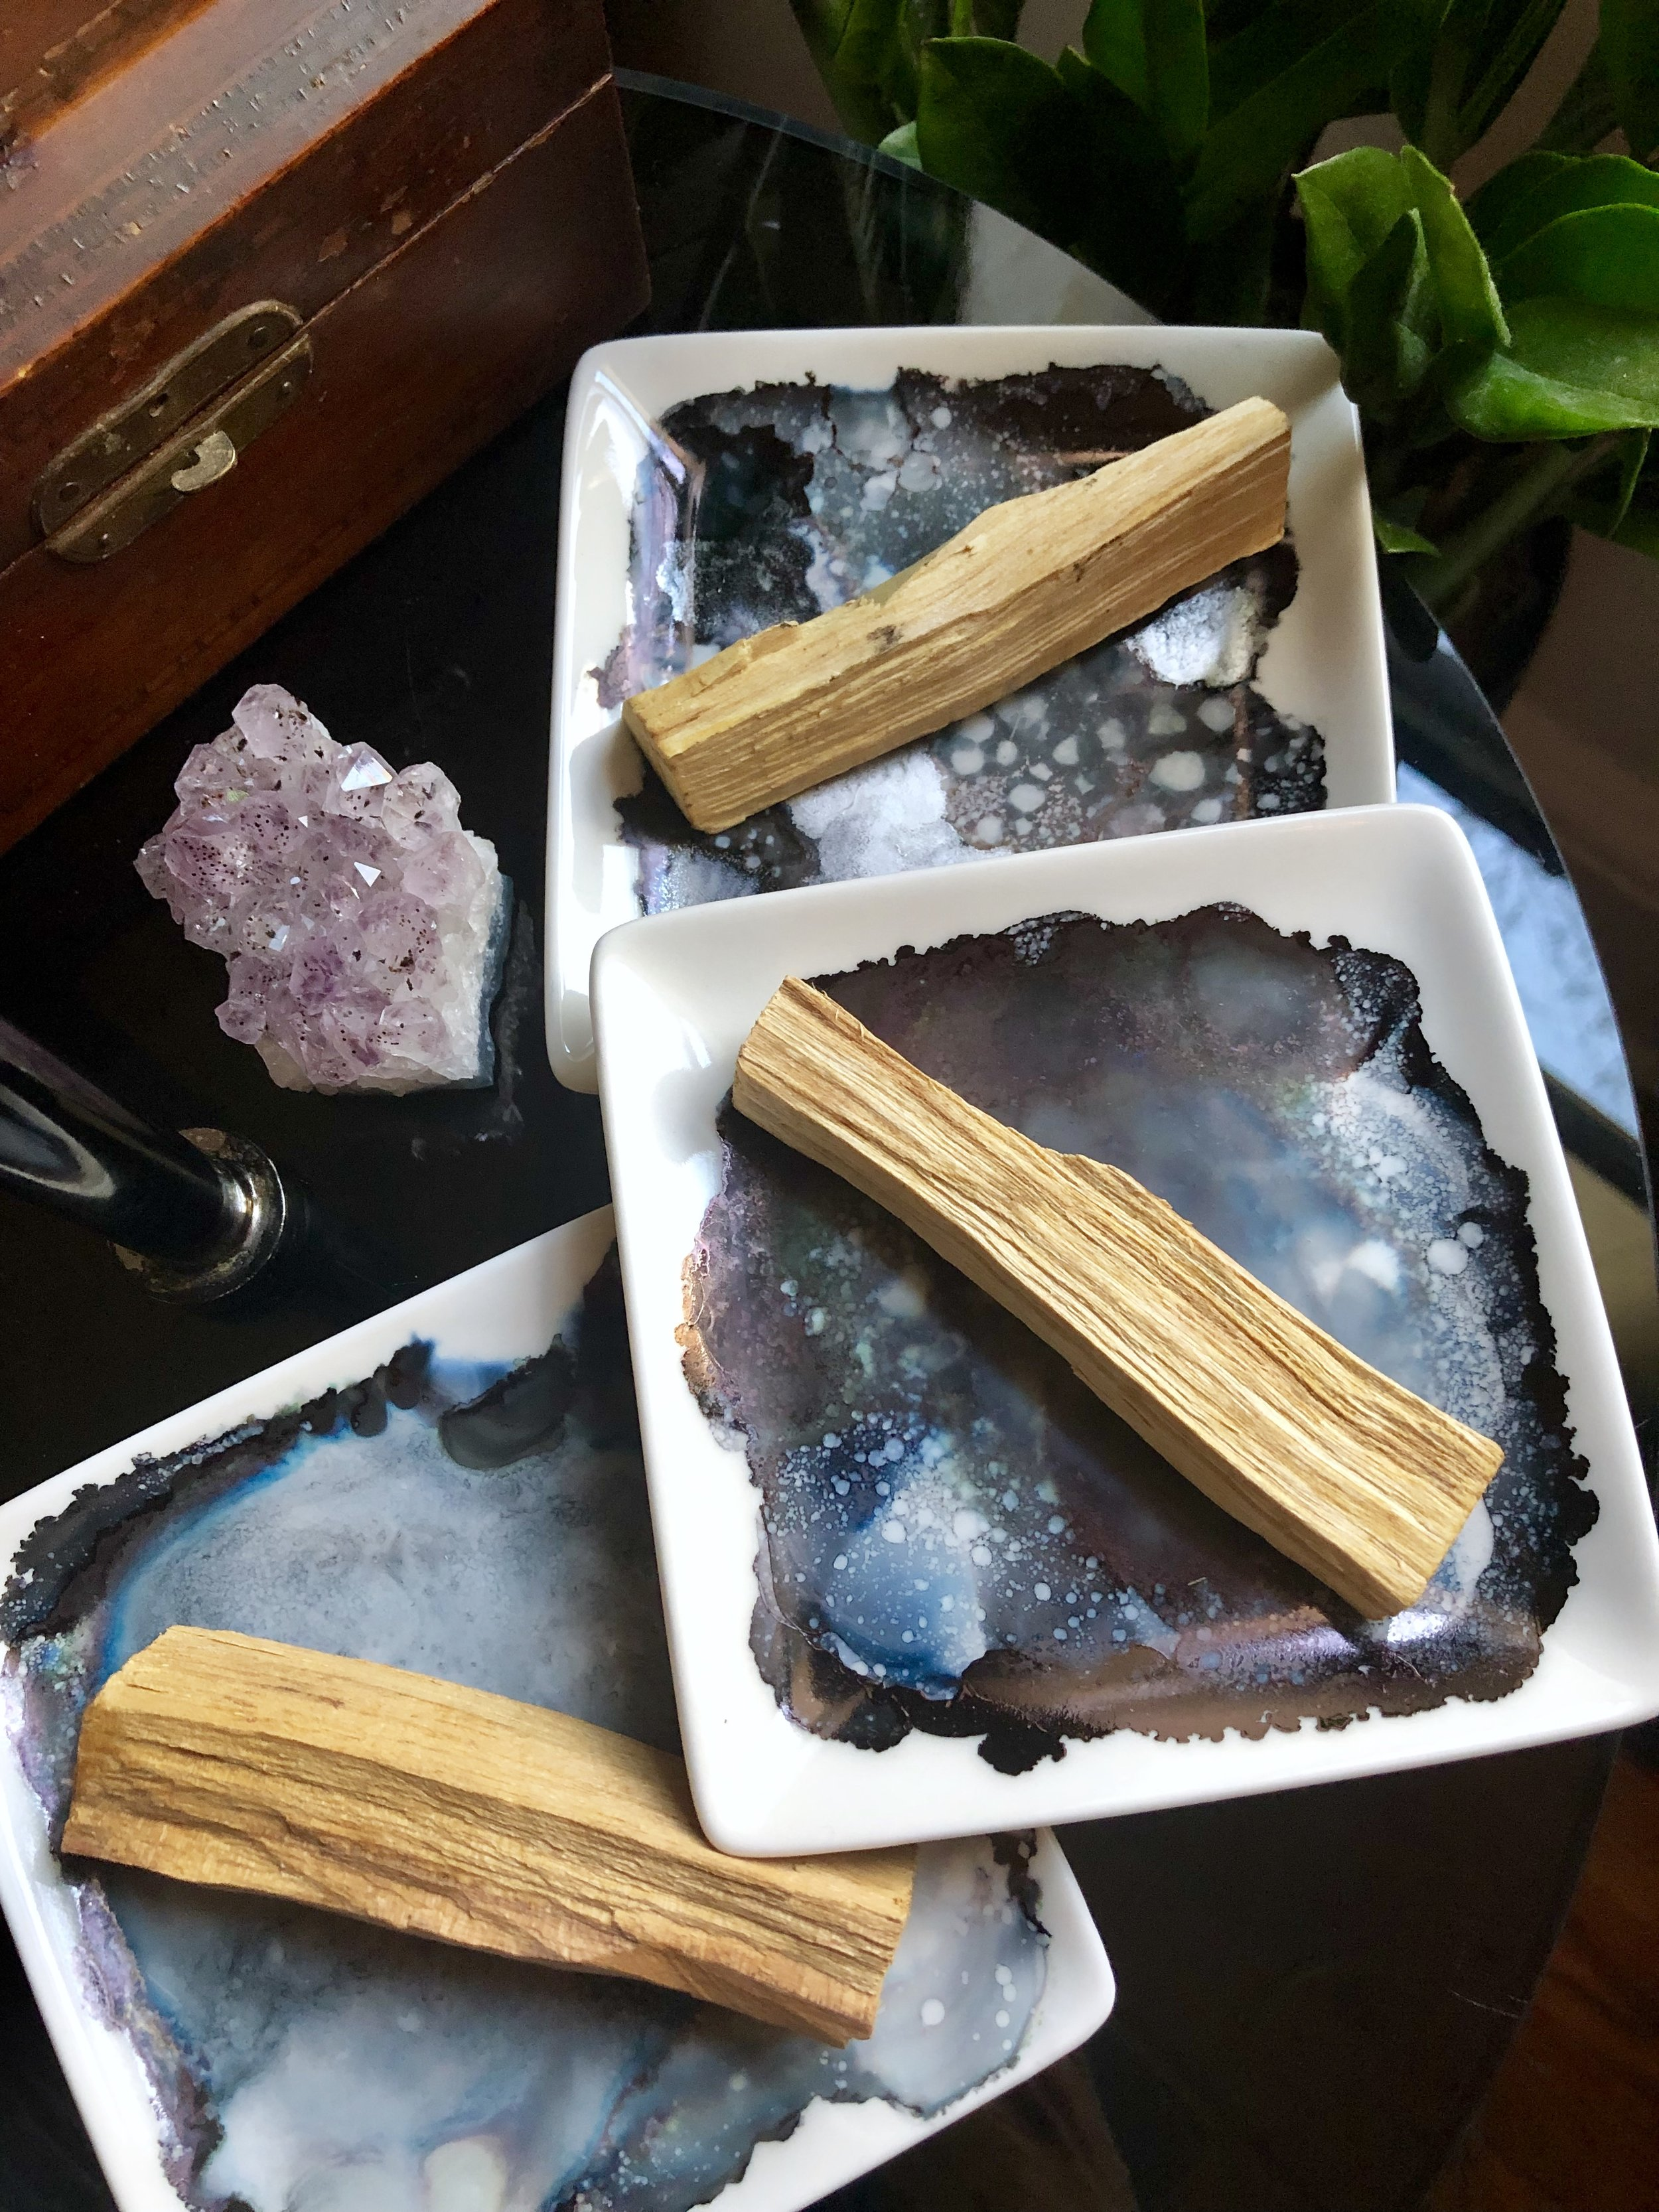 DIY Palo Santo Alcohol Ink Tray - Create a fun and funky ashtray for all your witchy needs! Smudge sticks, palo santo and rocks! Oh, my!  #hippiecraft #crystals #smudging #smudgestick #craftstodowhenyourbored #alcoholink #alcoholinking